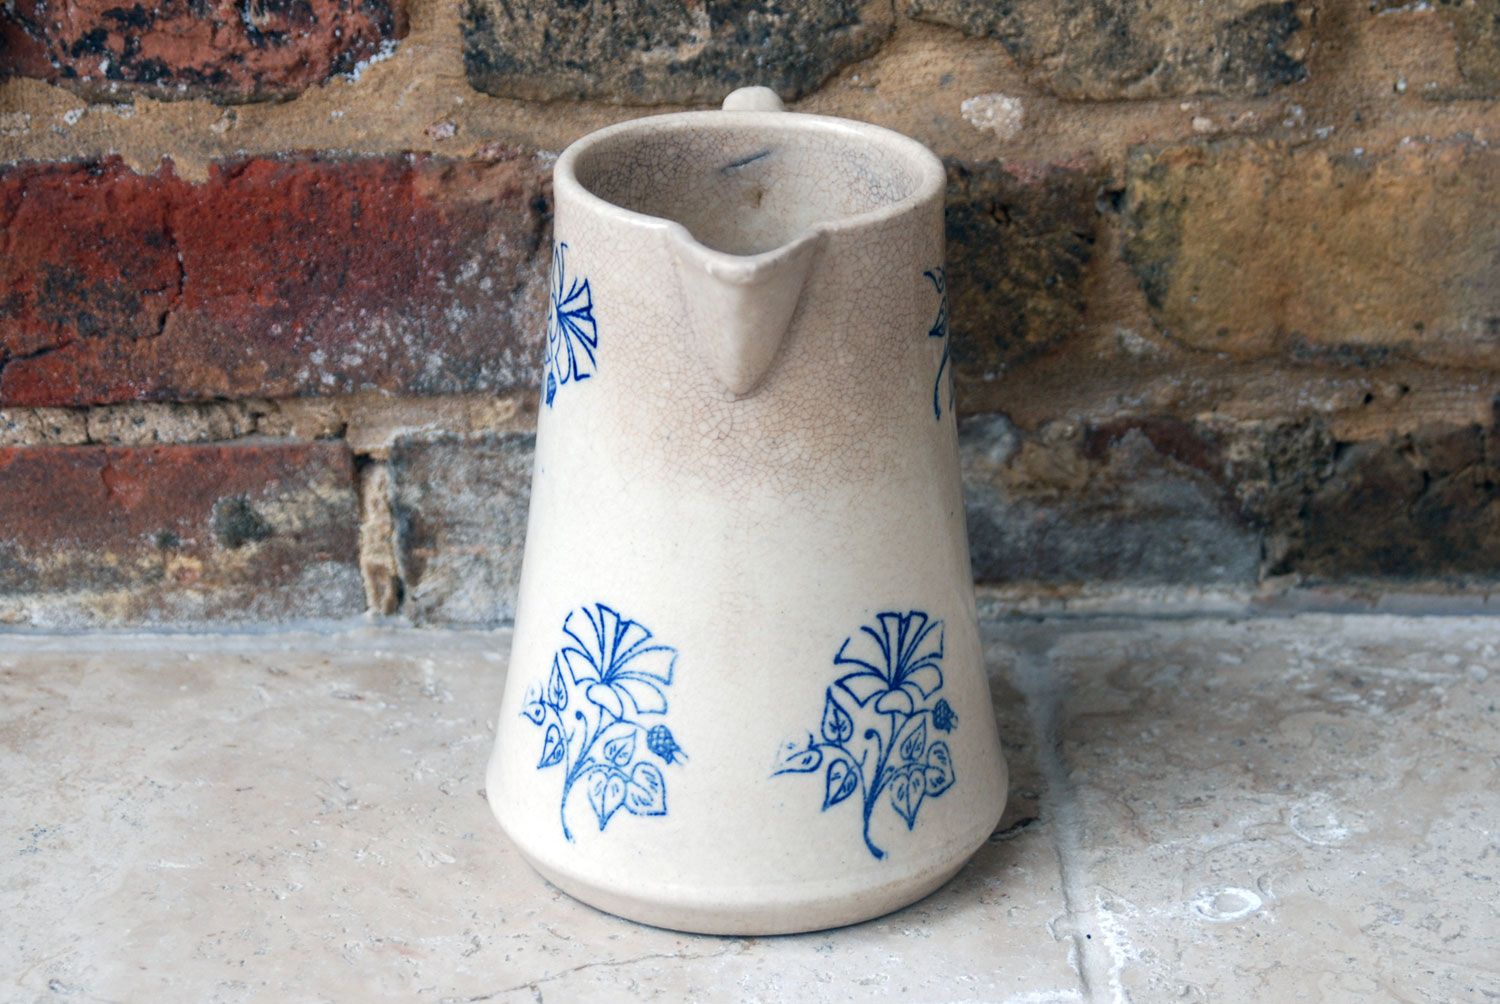 antique french ironstone stoneware french jug 19th century brocante floral decoration